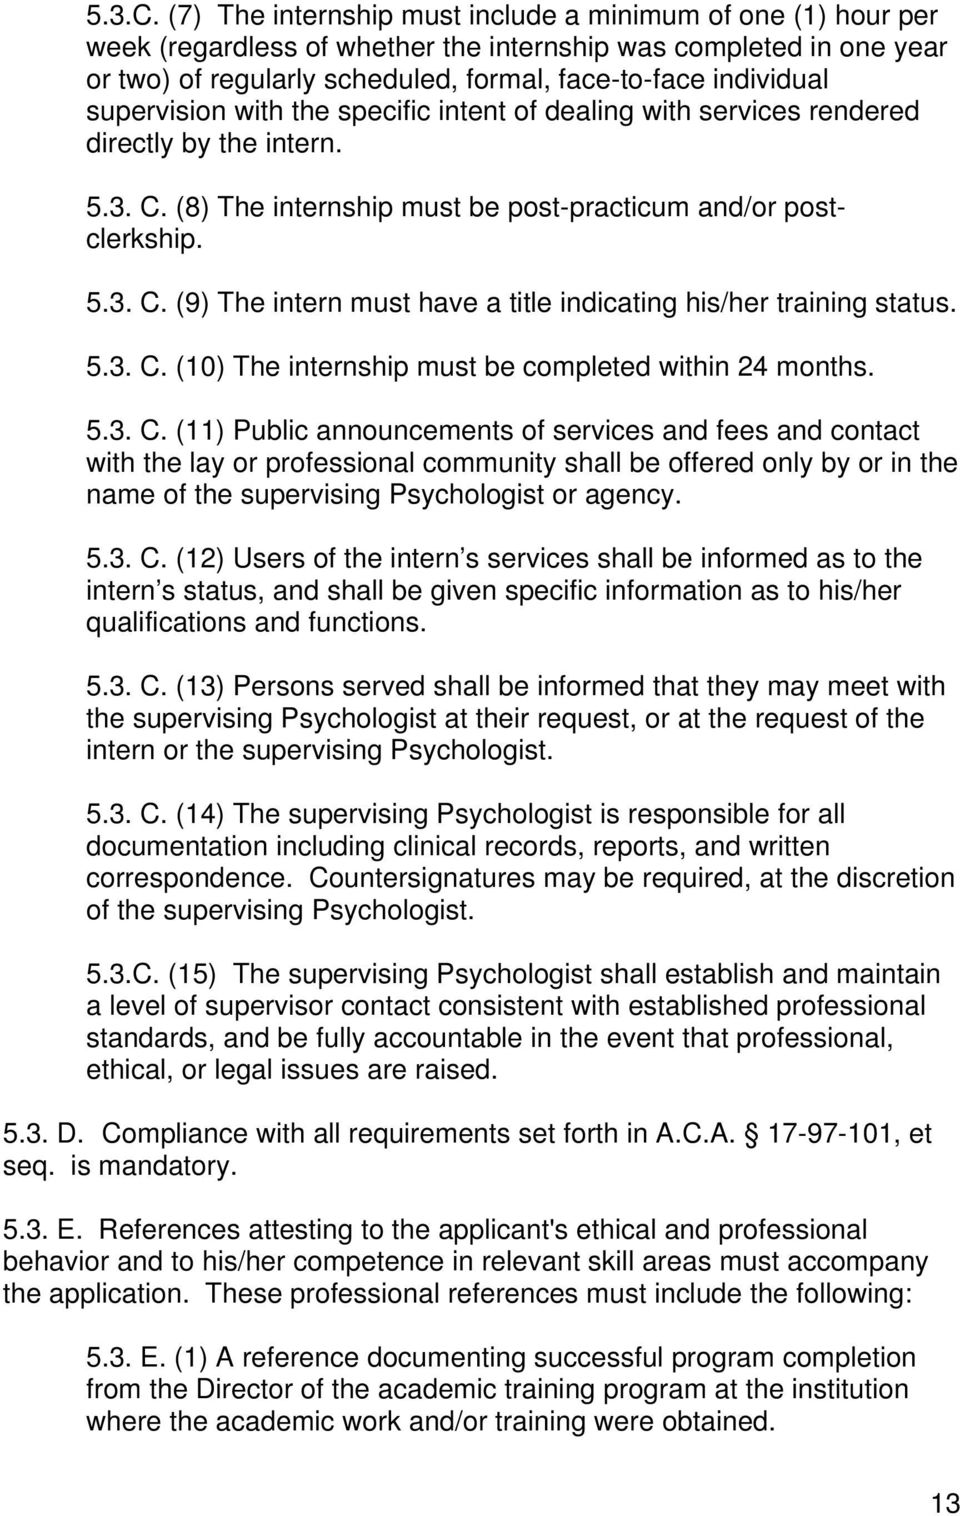 supervision with the specific intent of dealing with services rendered directly by the intern. 5.3. C. (8) The internship must be post-practicum and/or postclerkship. 5.3. C. (9) The intern must have a title indicating his/her training status.